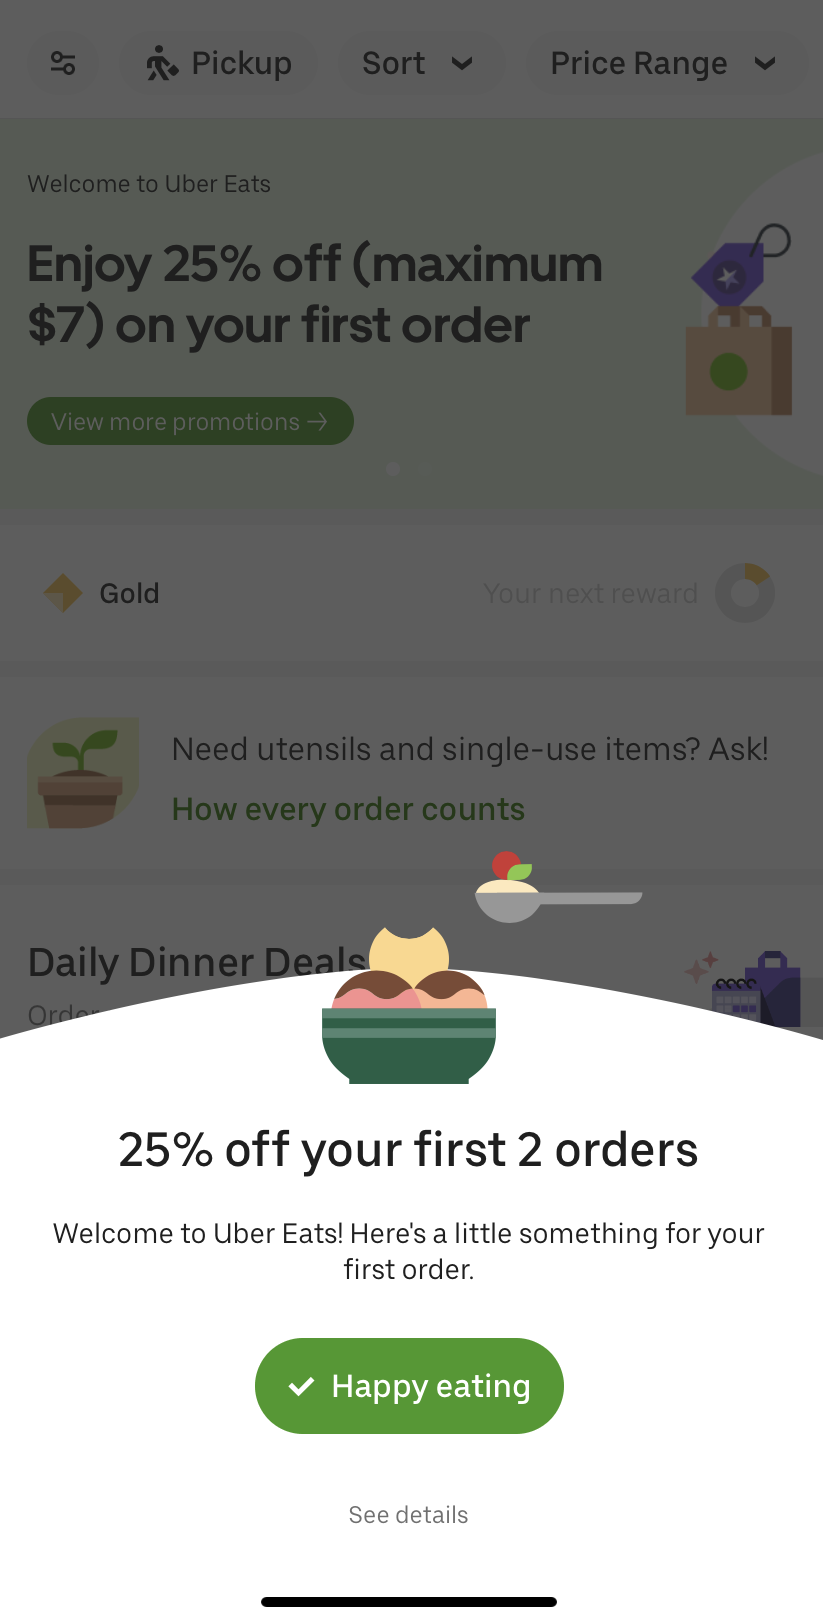 uber eats discount code in-app marketing slide up